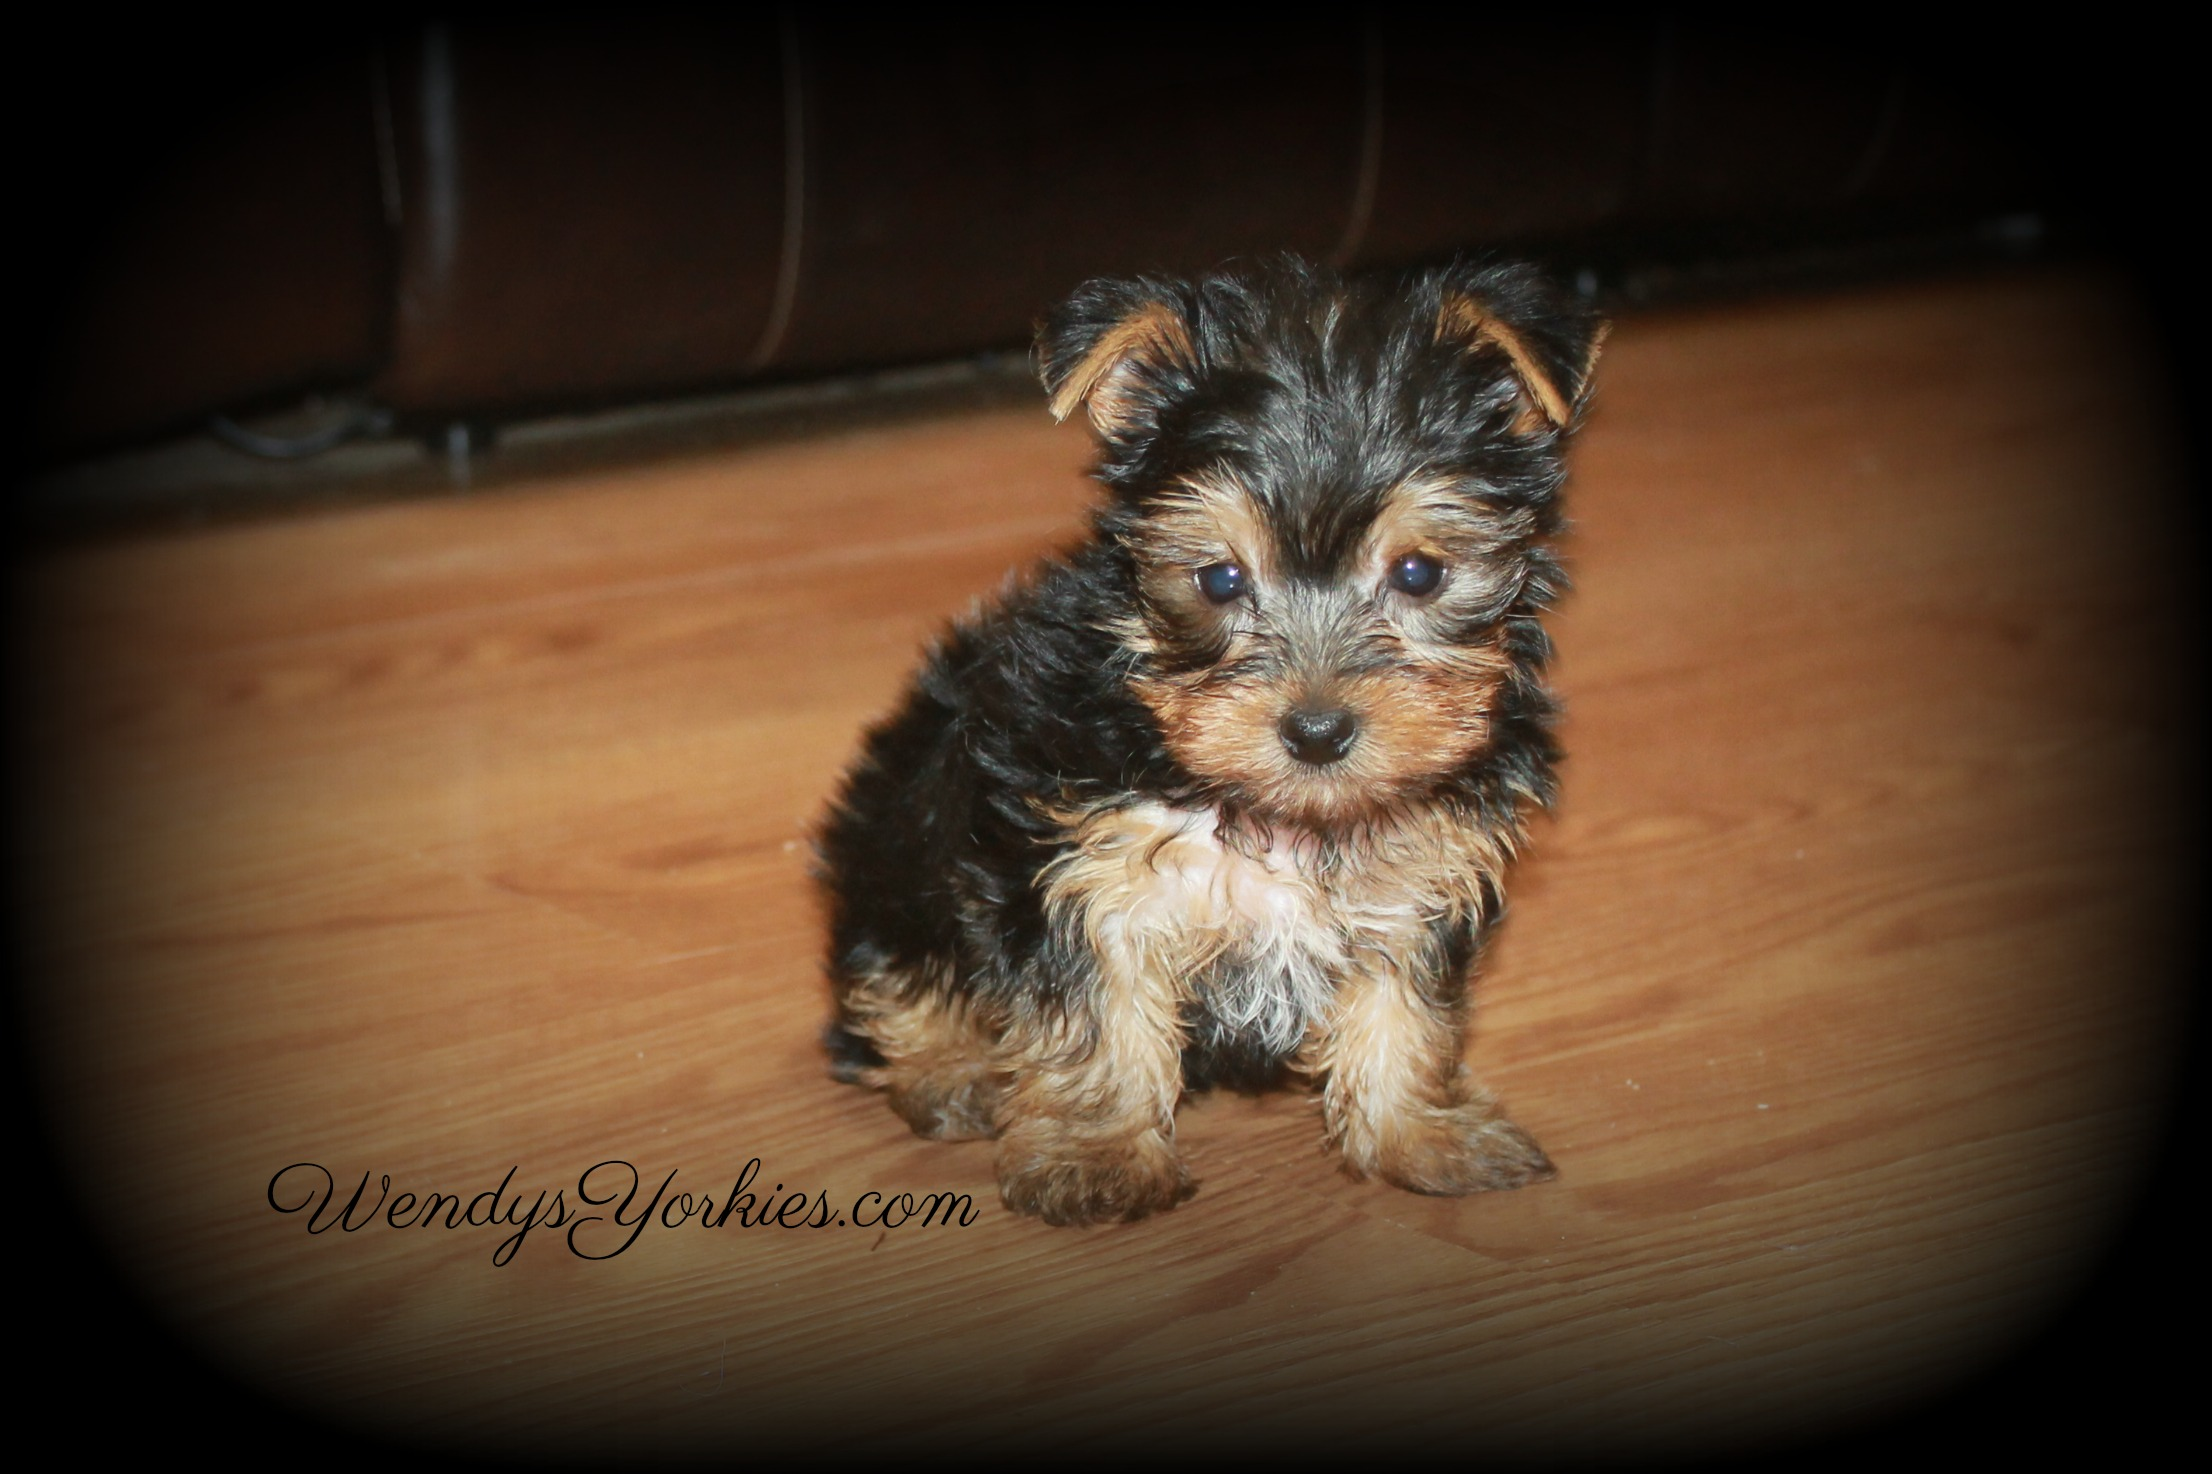 Male Yorkie puppy for sale, Jans, WendysYorkies.com